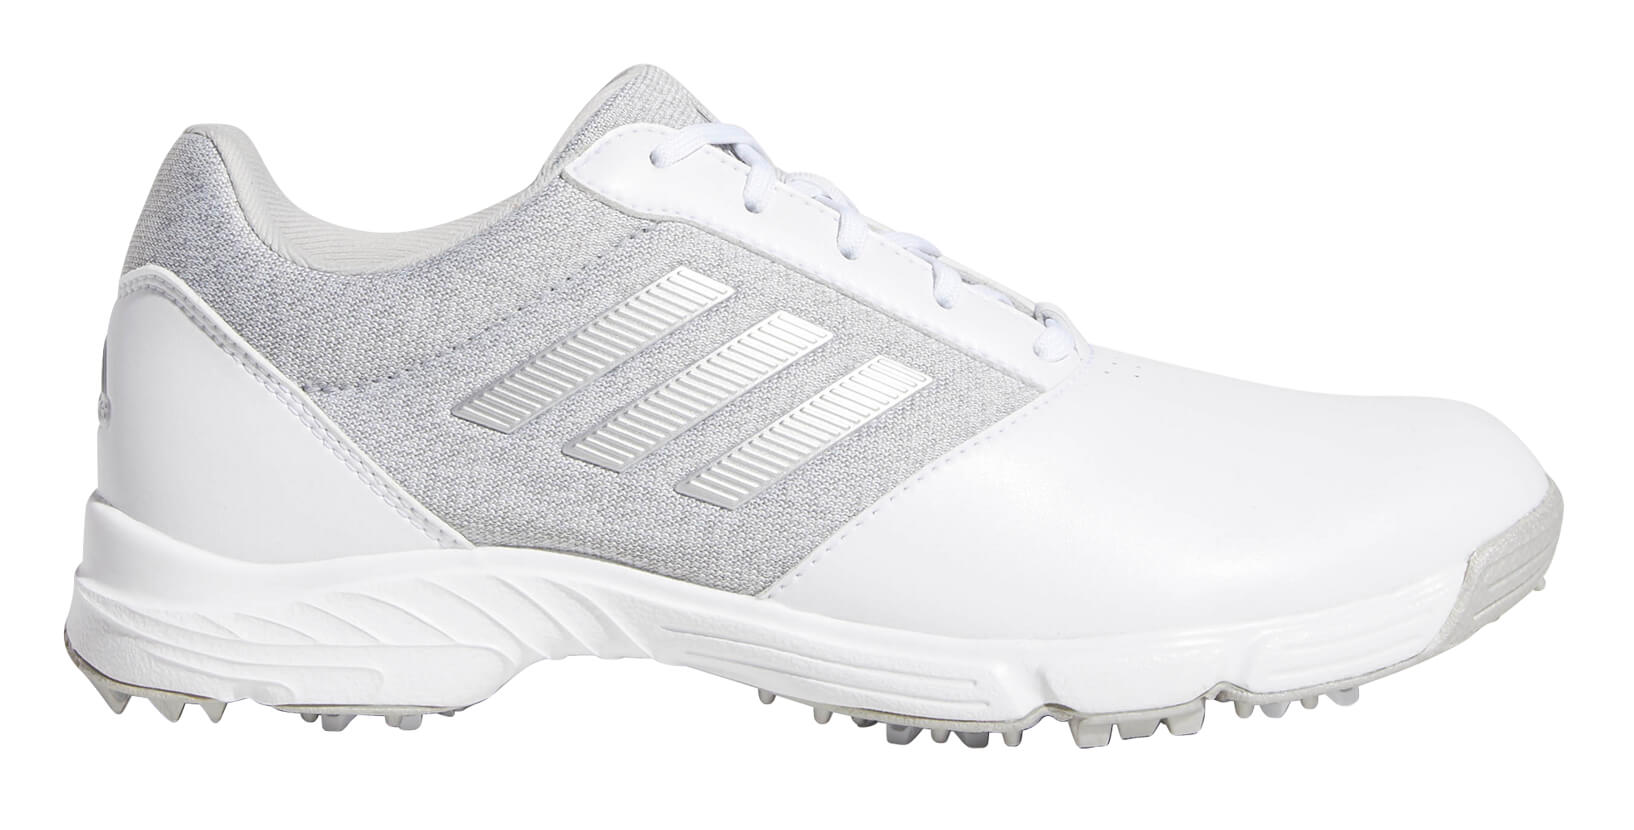 a4fb94416d4a Details about Adidas Women s Tech Response Ladies Golf Shoes BD7147 White  Silver New